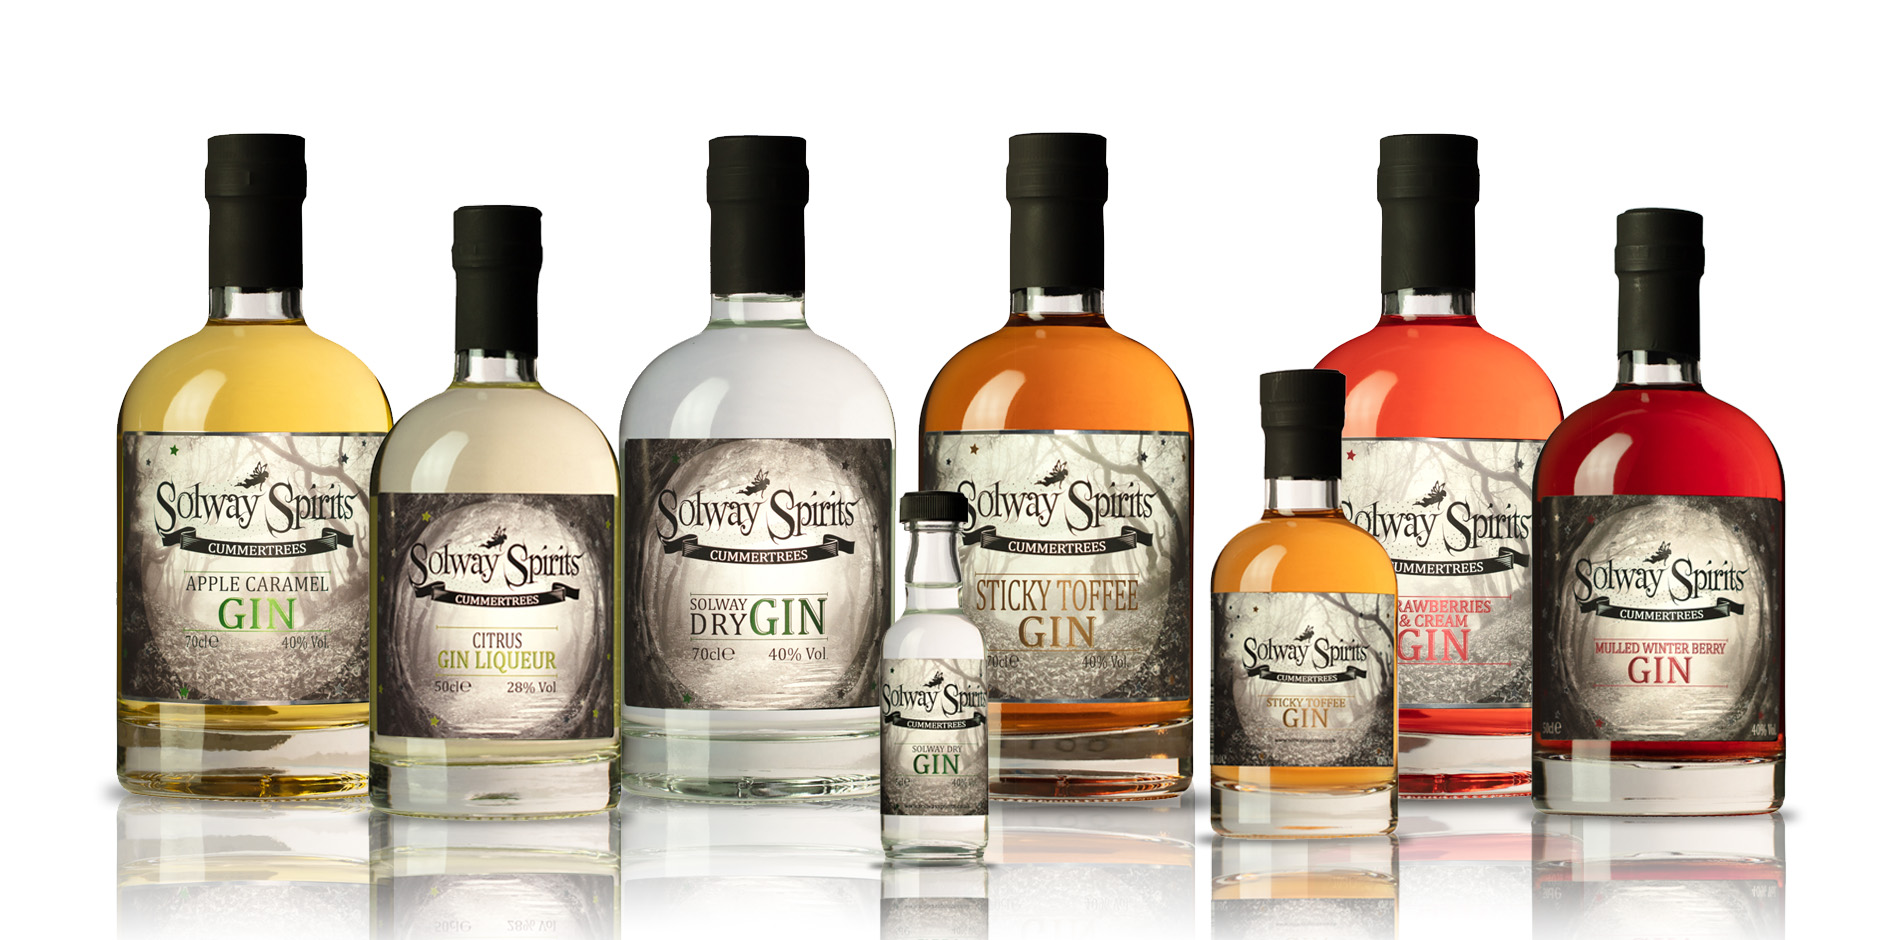 Solway Spirits Gins & Liqueurs